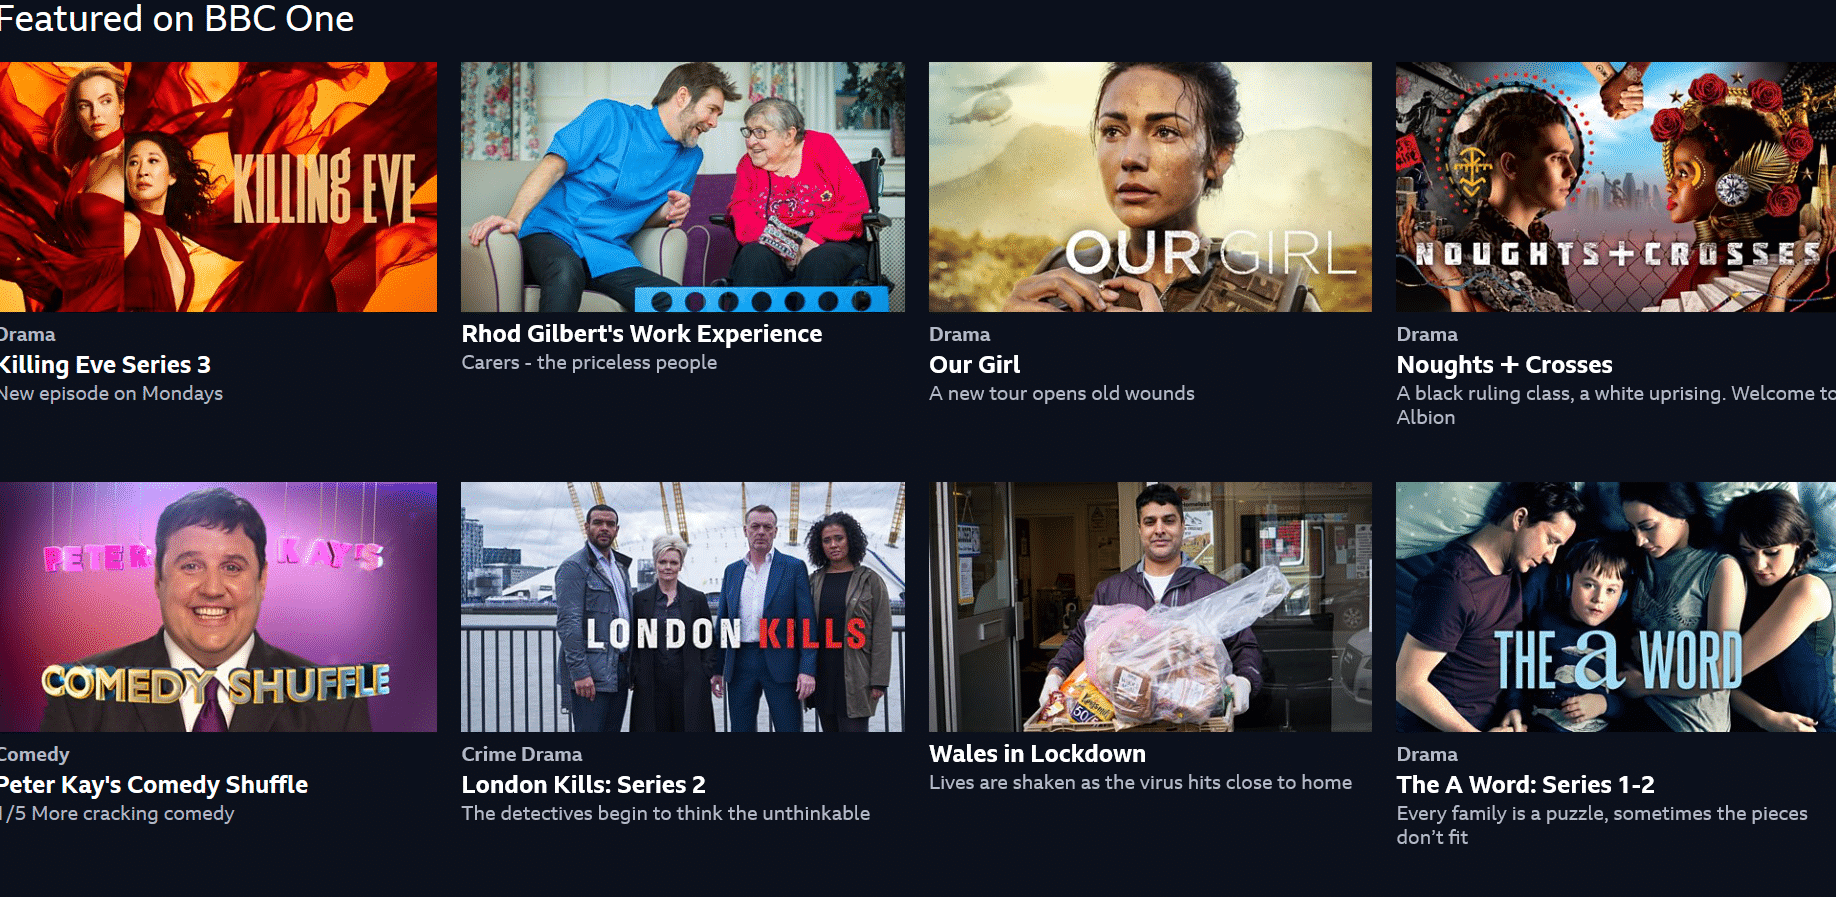 BBC iplayer abroad - featured on BBC One